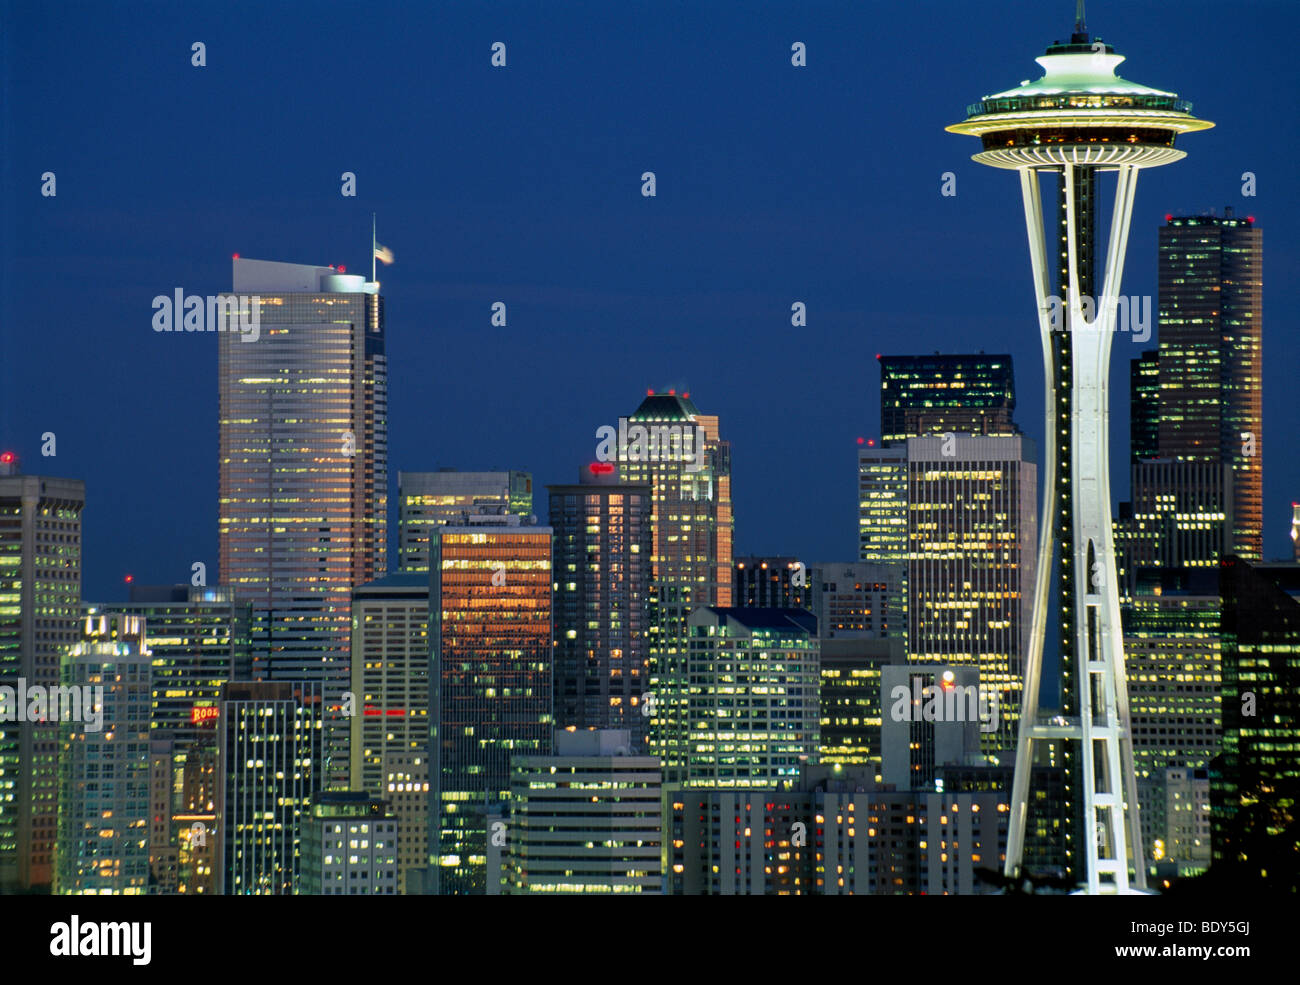 Skyline of Seattle, the Space Needle right, at night, Seattle, Washington, USA - Stock Image